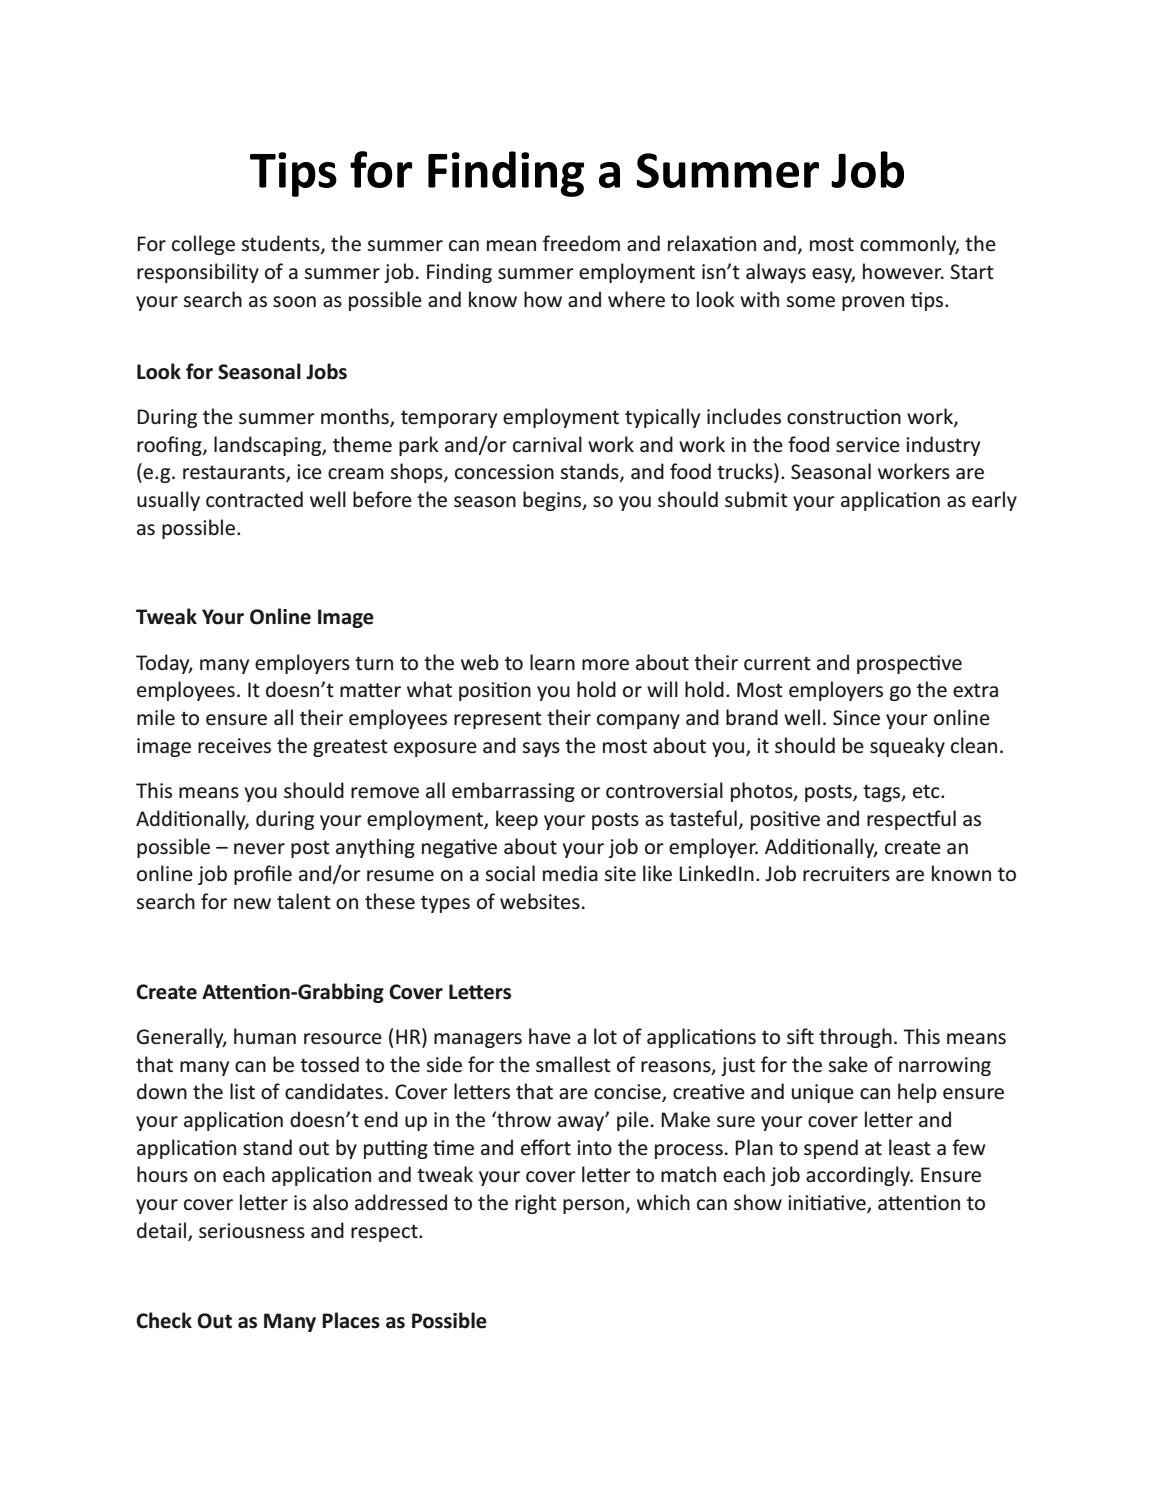 Tips for Finding a Summer Job by 1Eleven - issuu